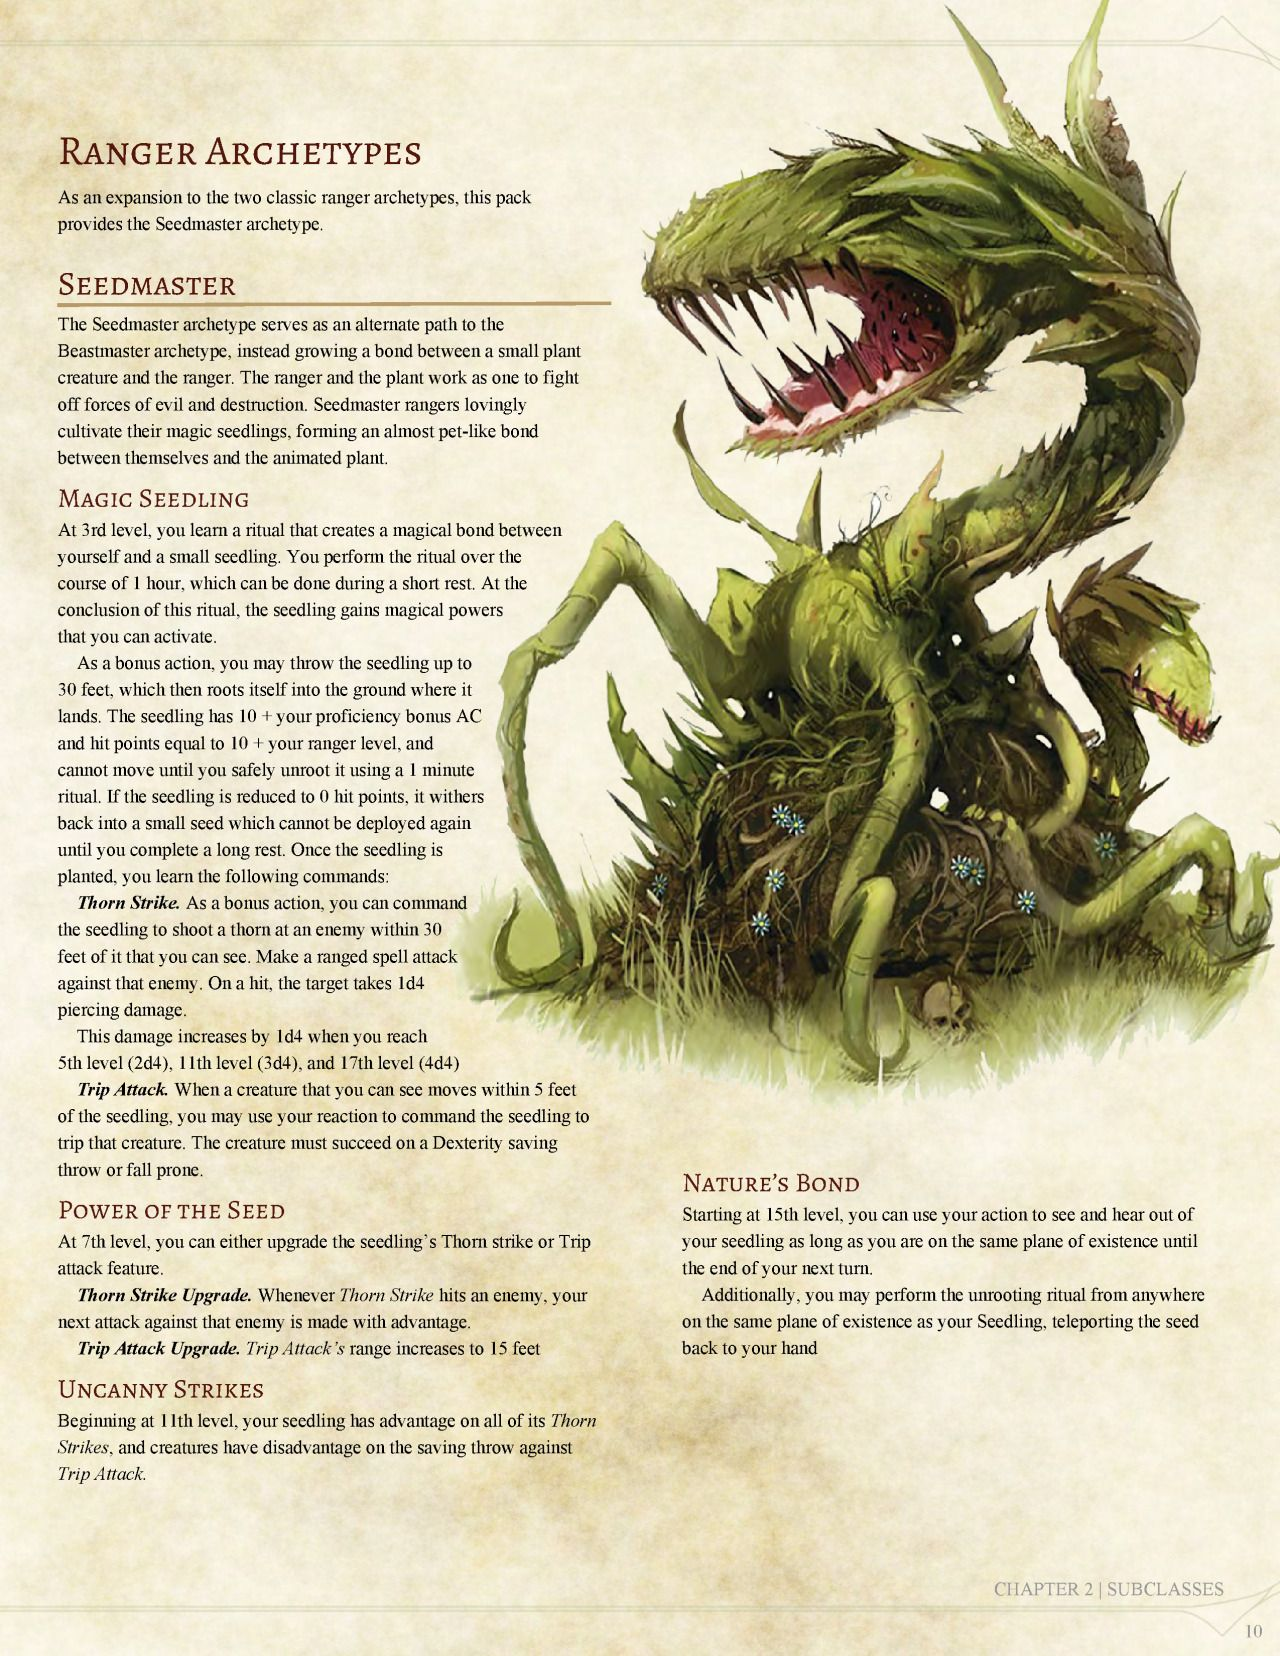 Pin by Rod Sparks on Video Games Collaboration | Dnd 5e homebrew